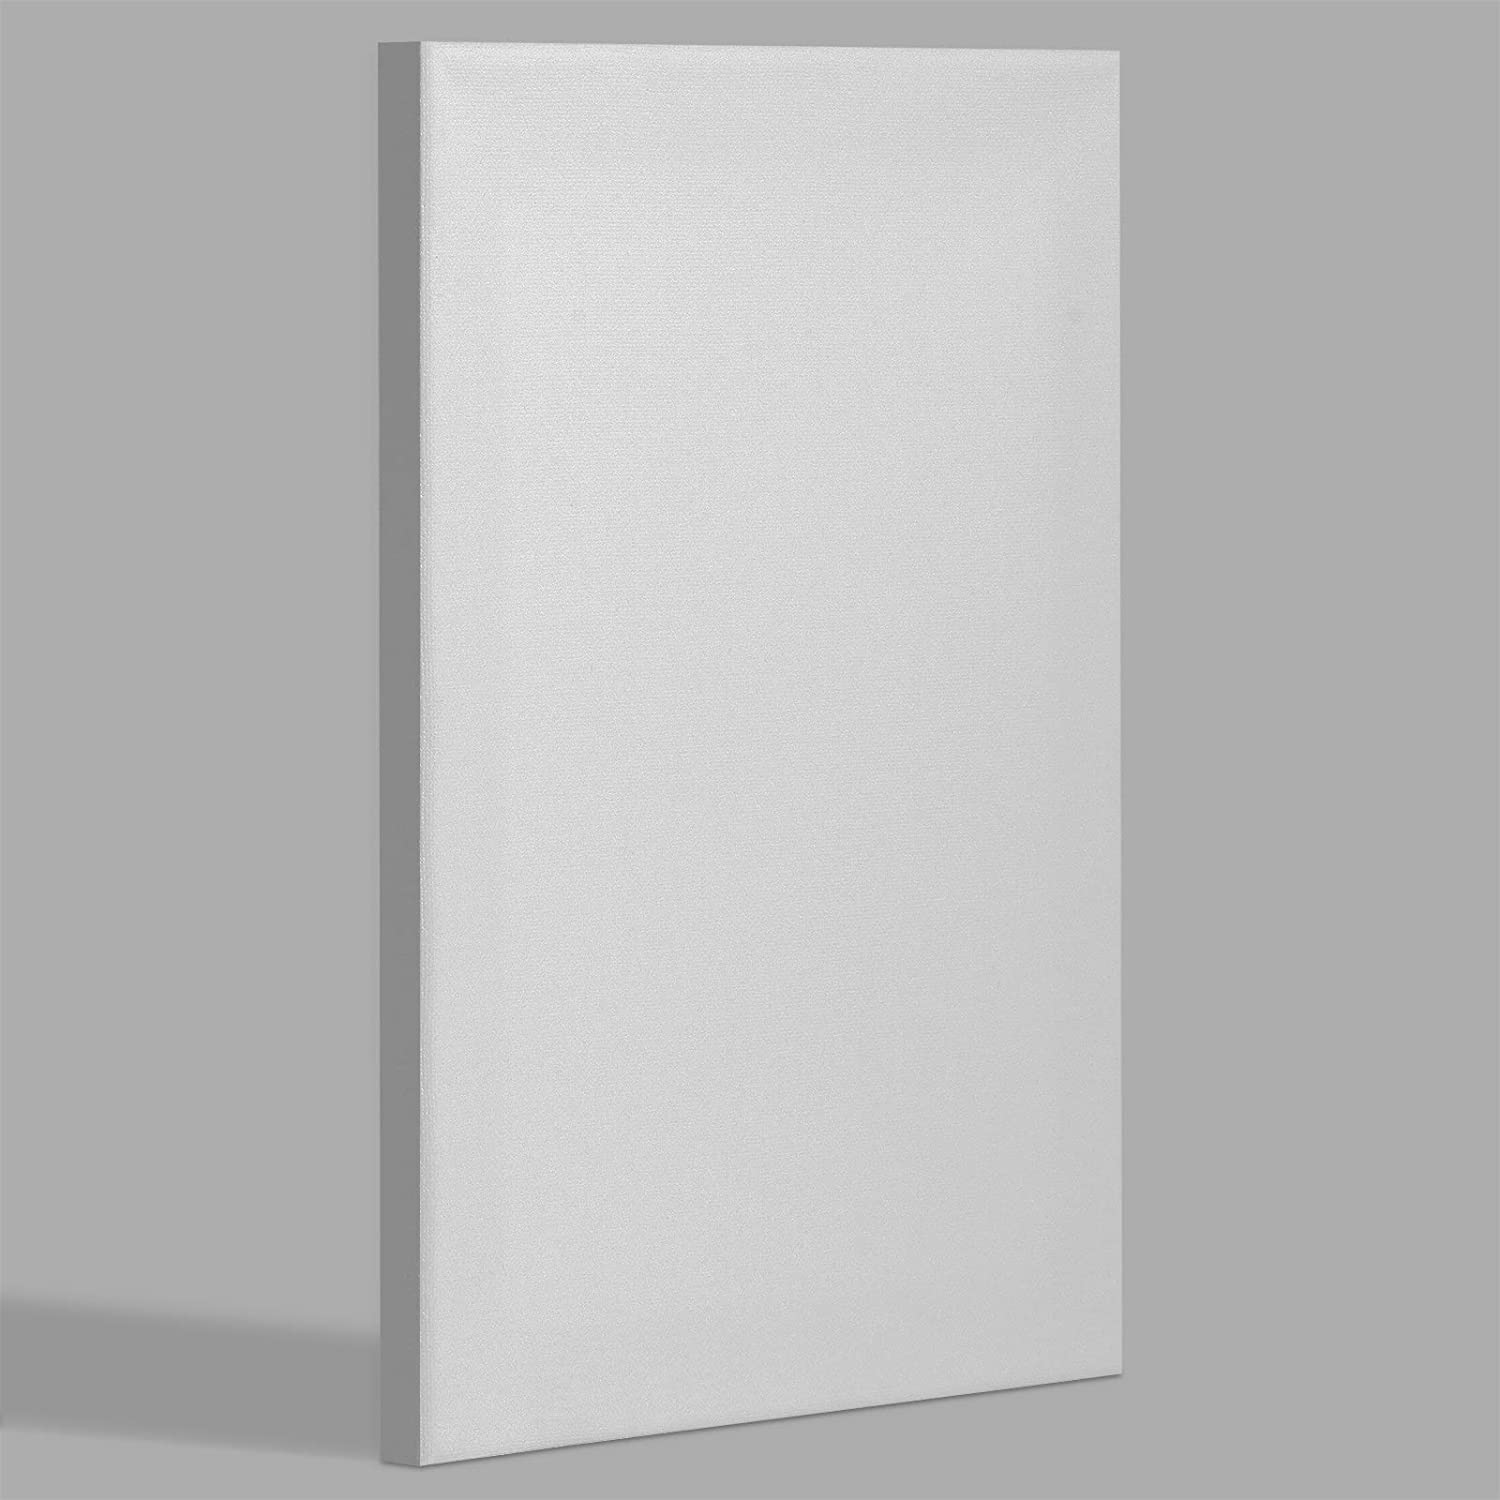 miniature 14 - Americanflat Stretched Canvas in White 100% Cotton Wooden Frames & Acid Free